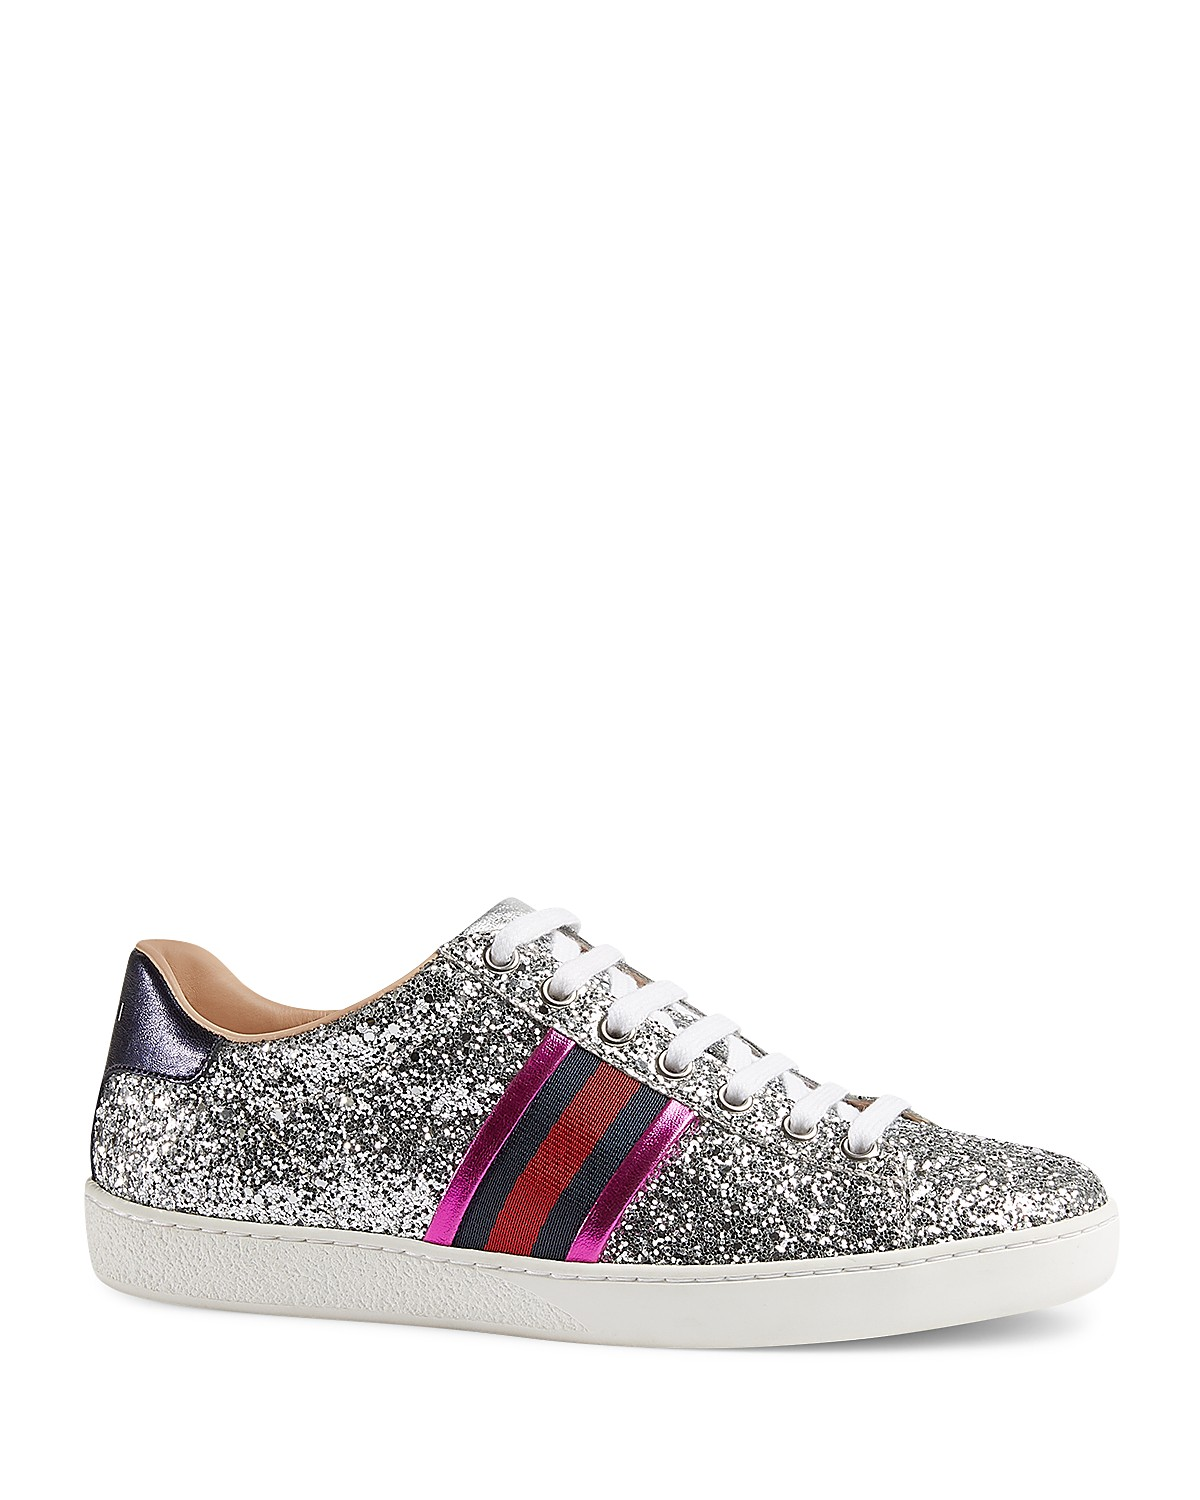 Ace lace sneakers - Pink & Purple Gucci EKnmcF